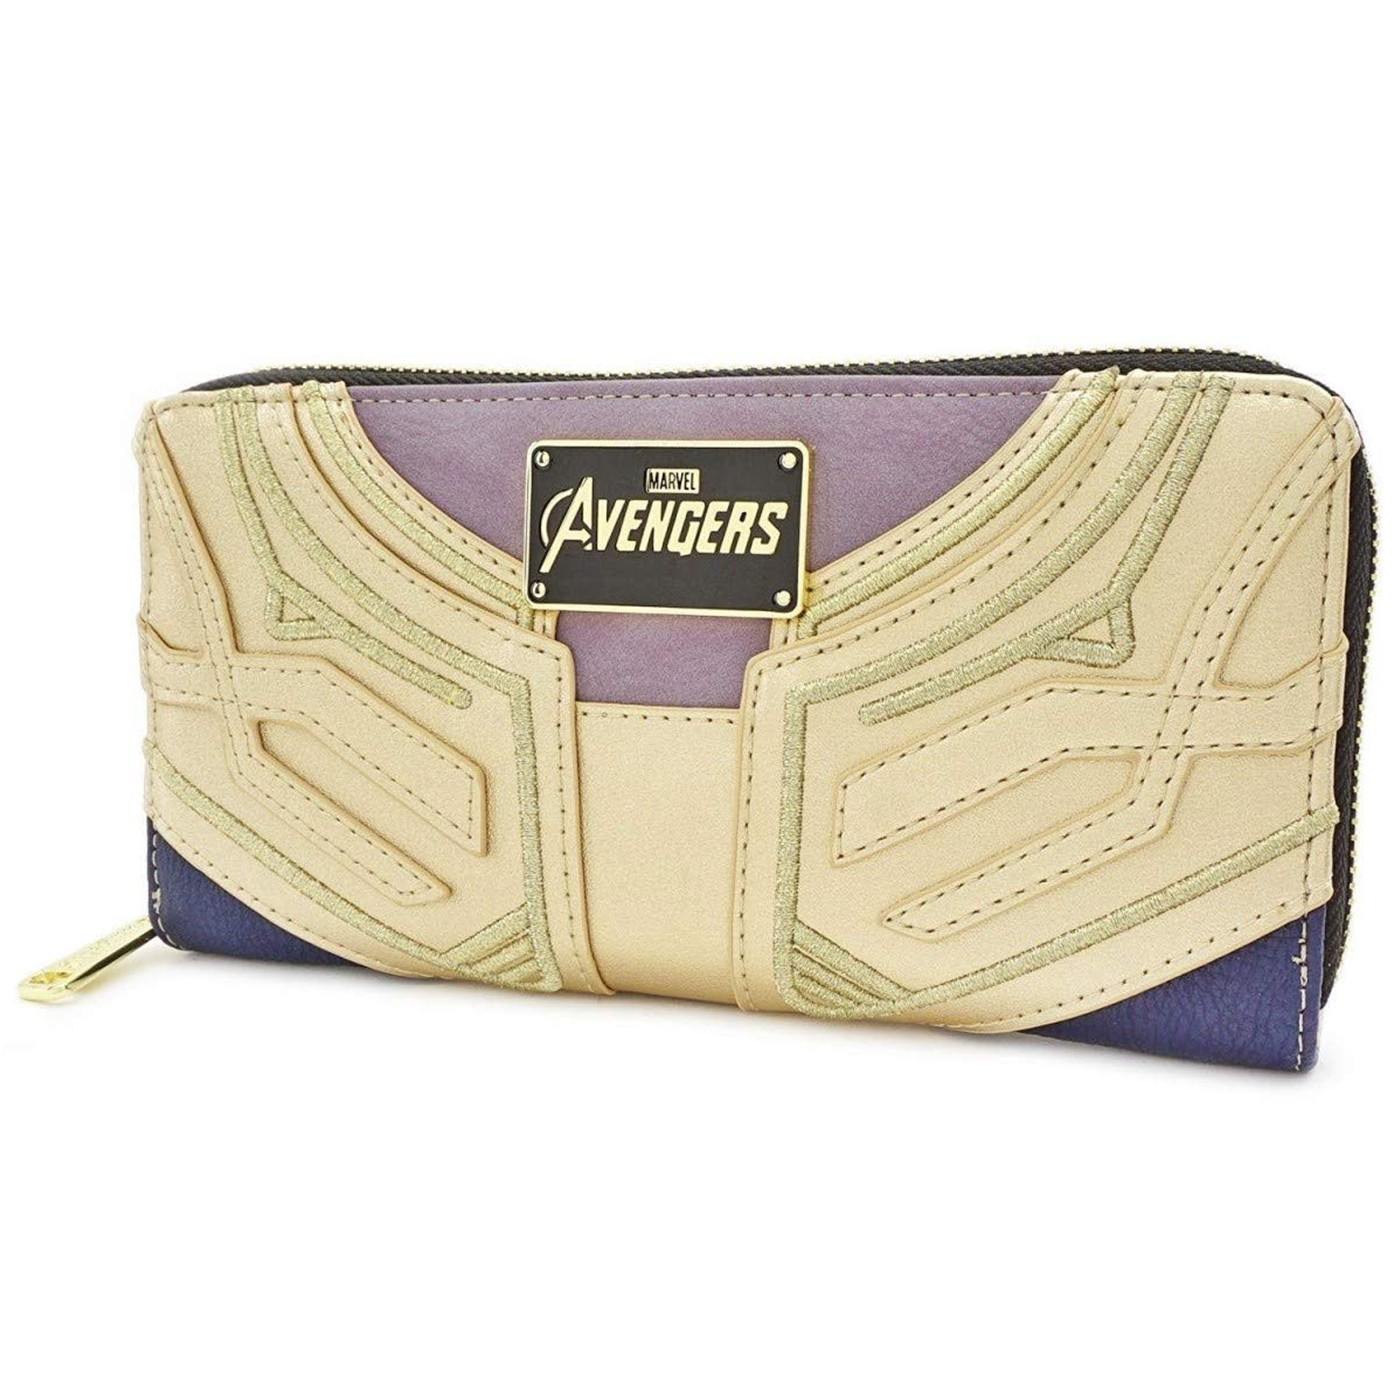 Avengers Endgame Movie Thanos Infinity Gauntlet Zip Around